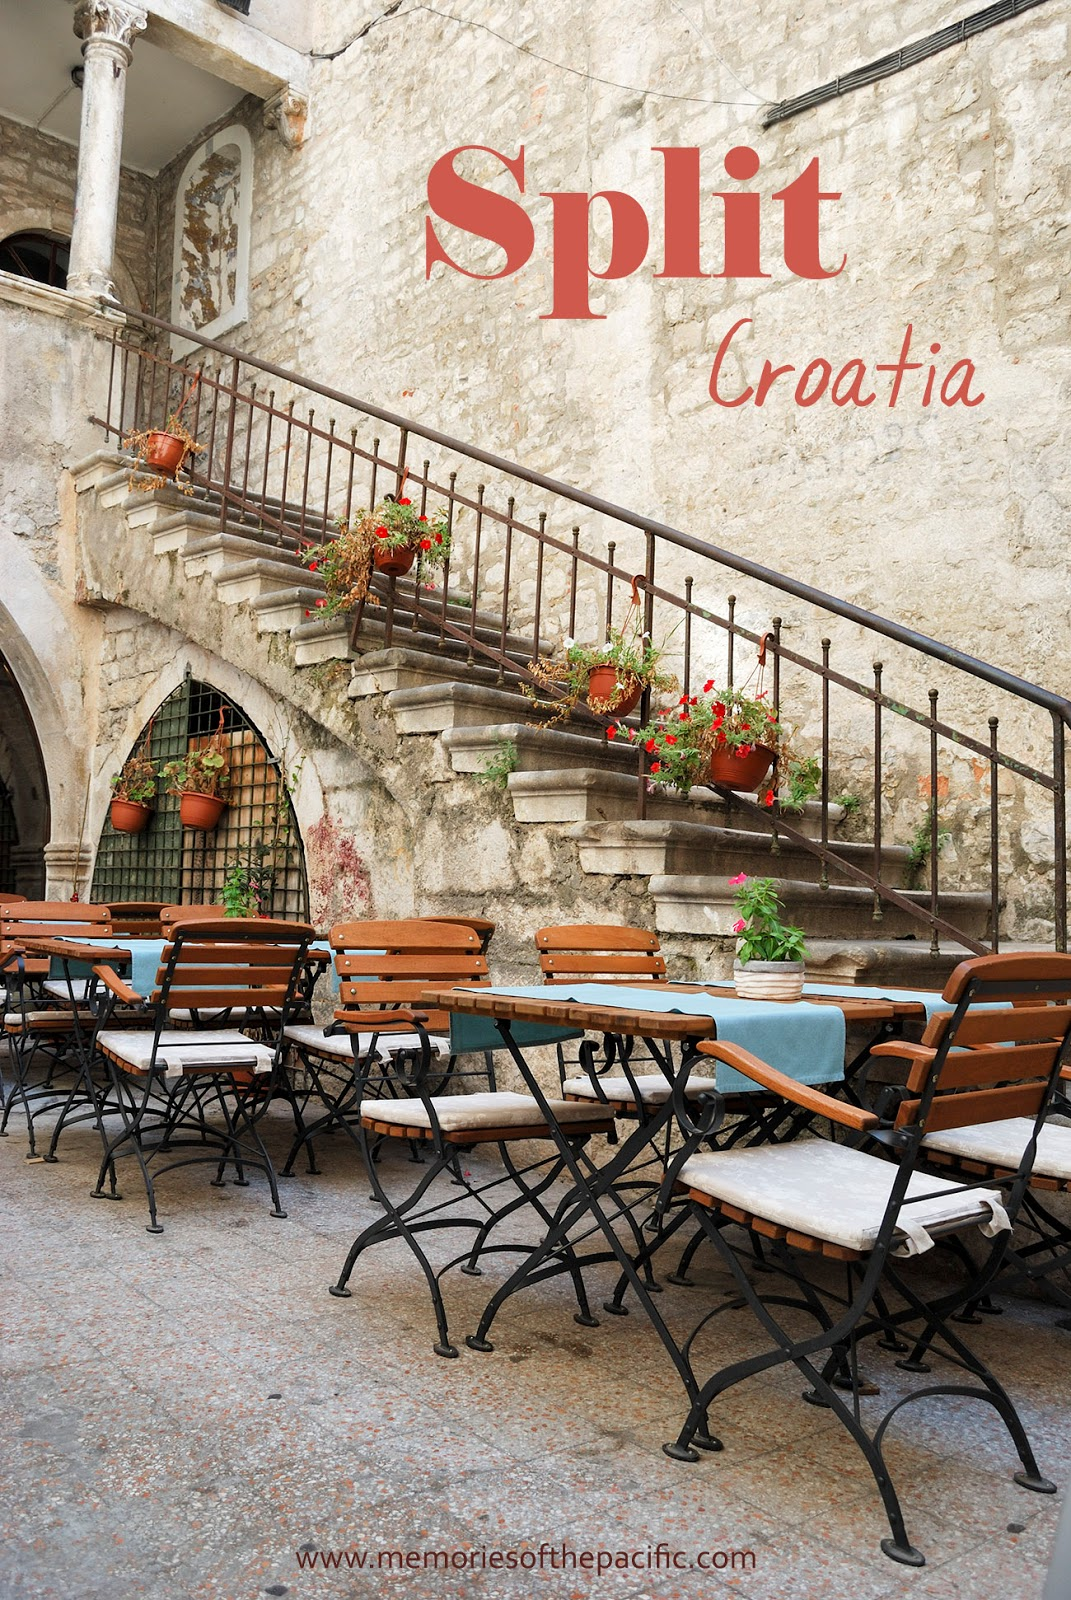 split croatia europe dalmatia adriatic cruise beautiful restaurant pinterest